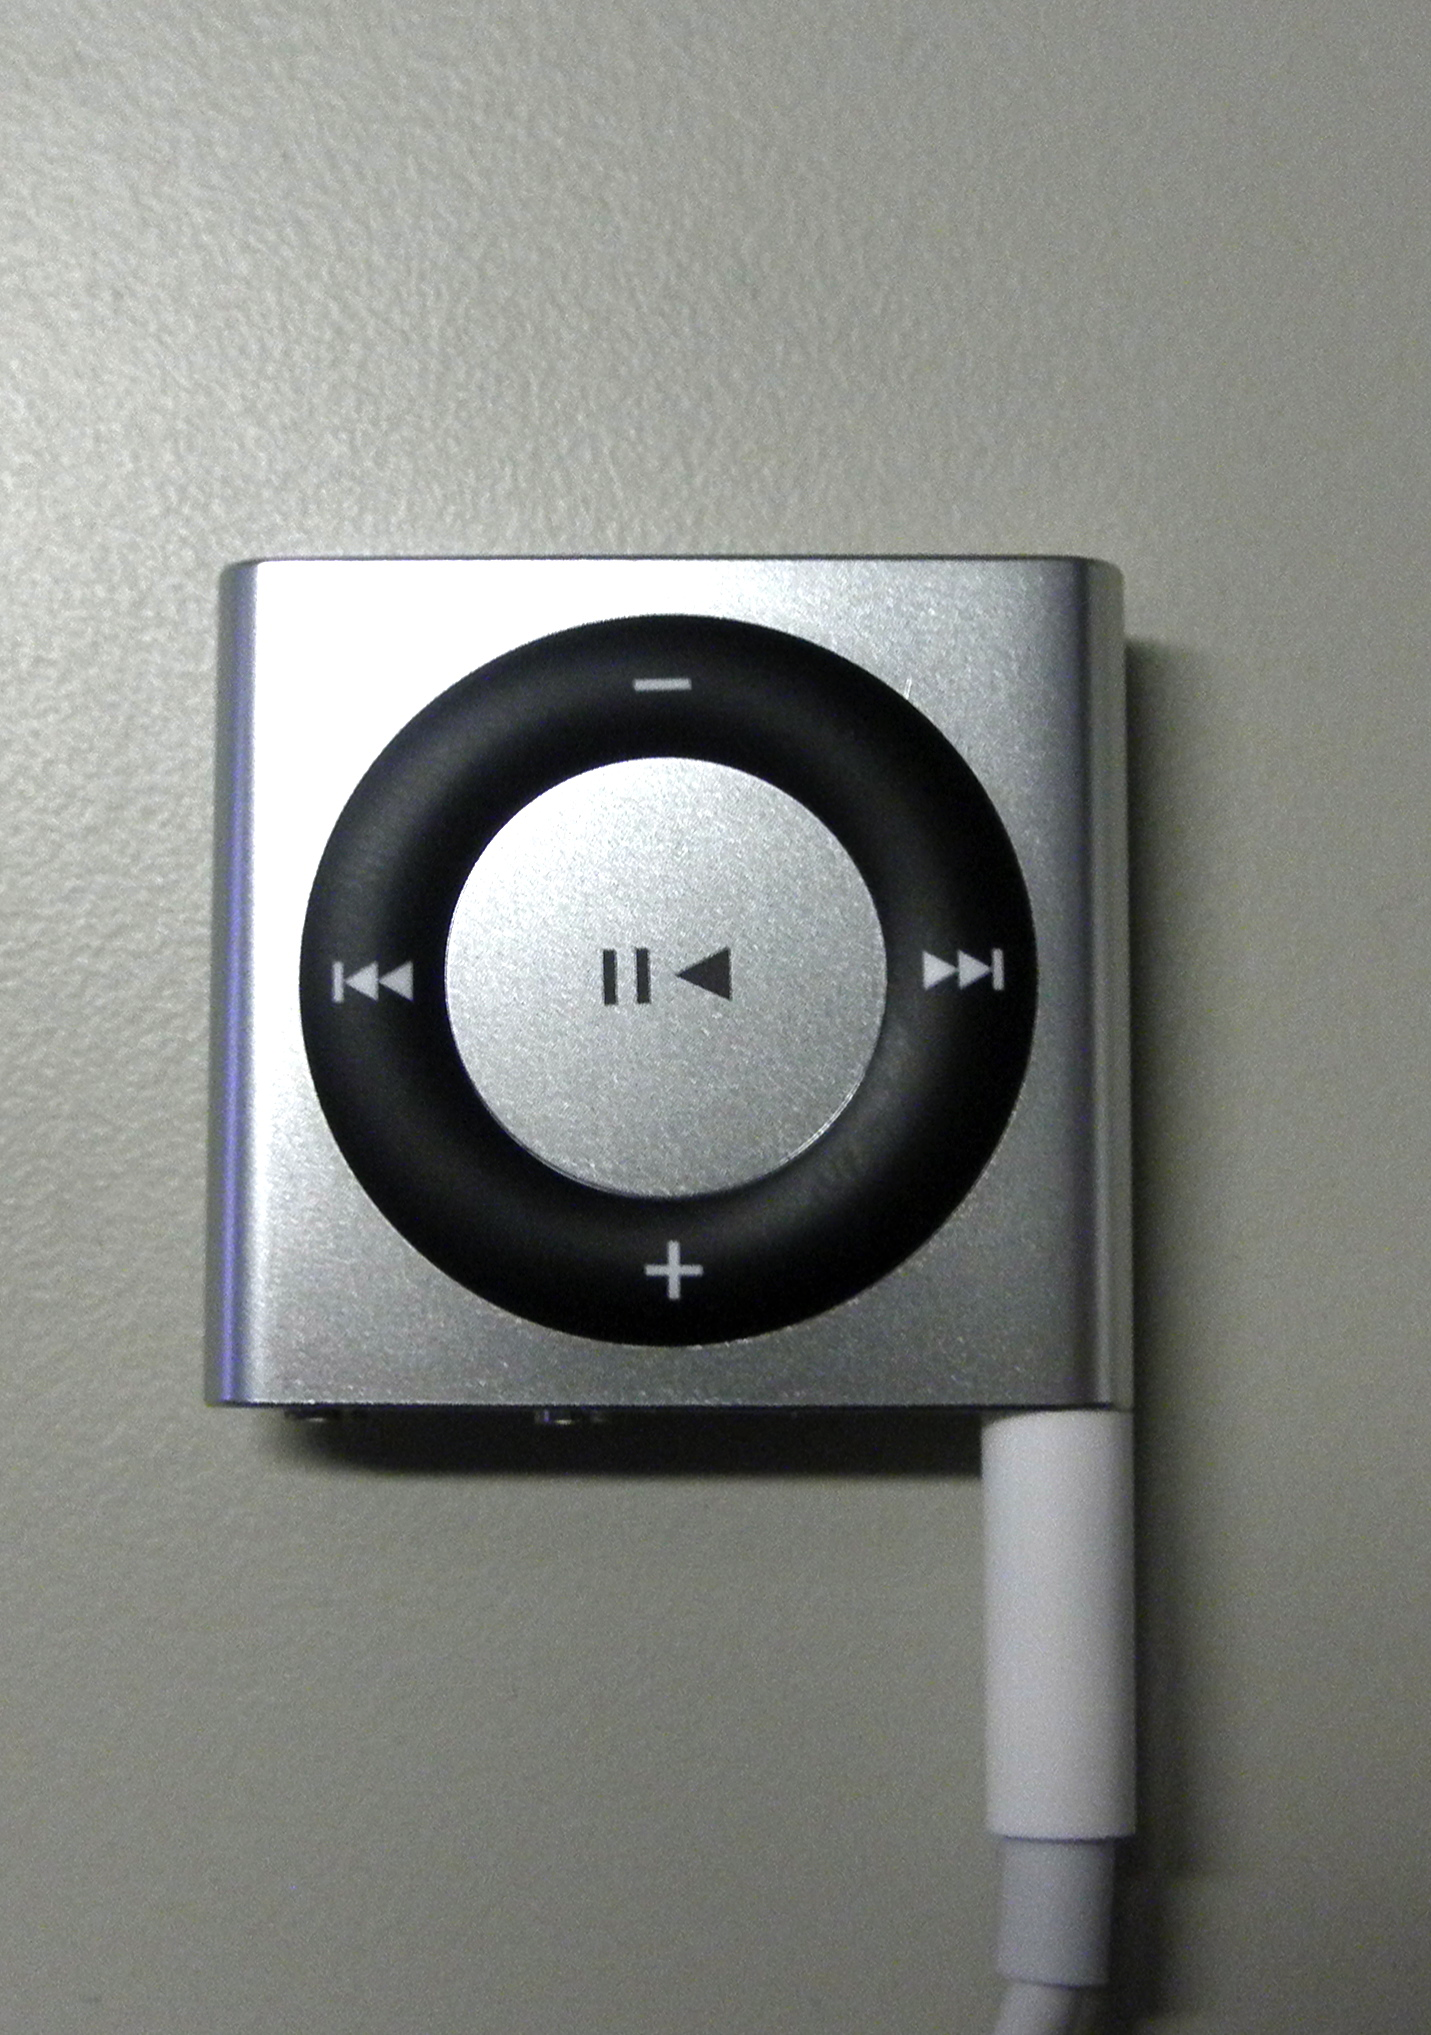 how to download music on your ipod shuffle without itunes